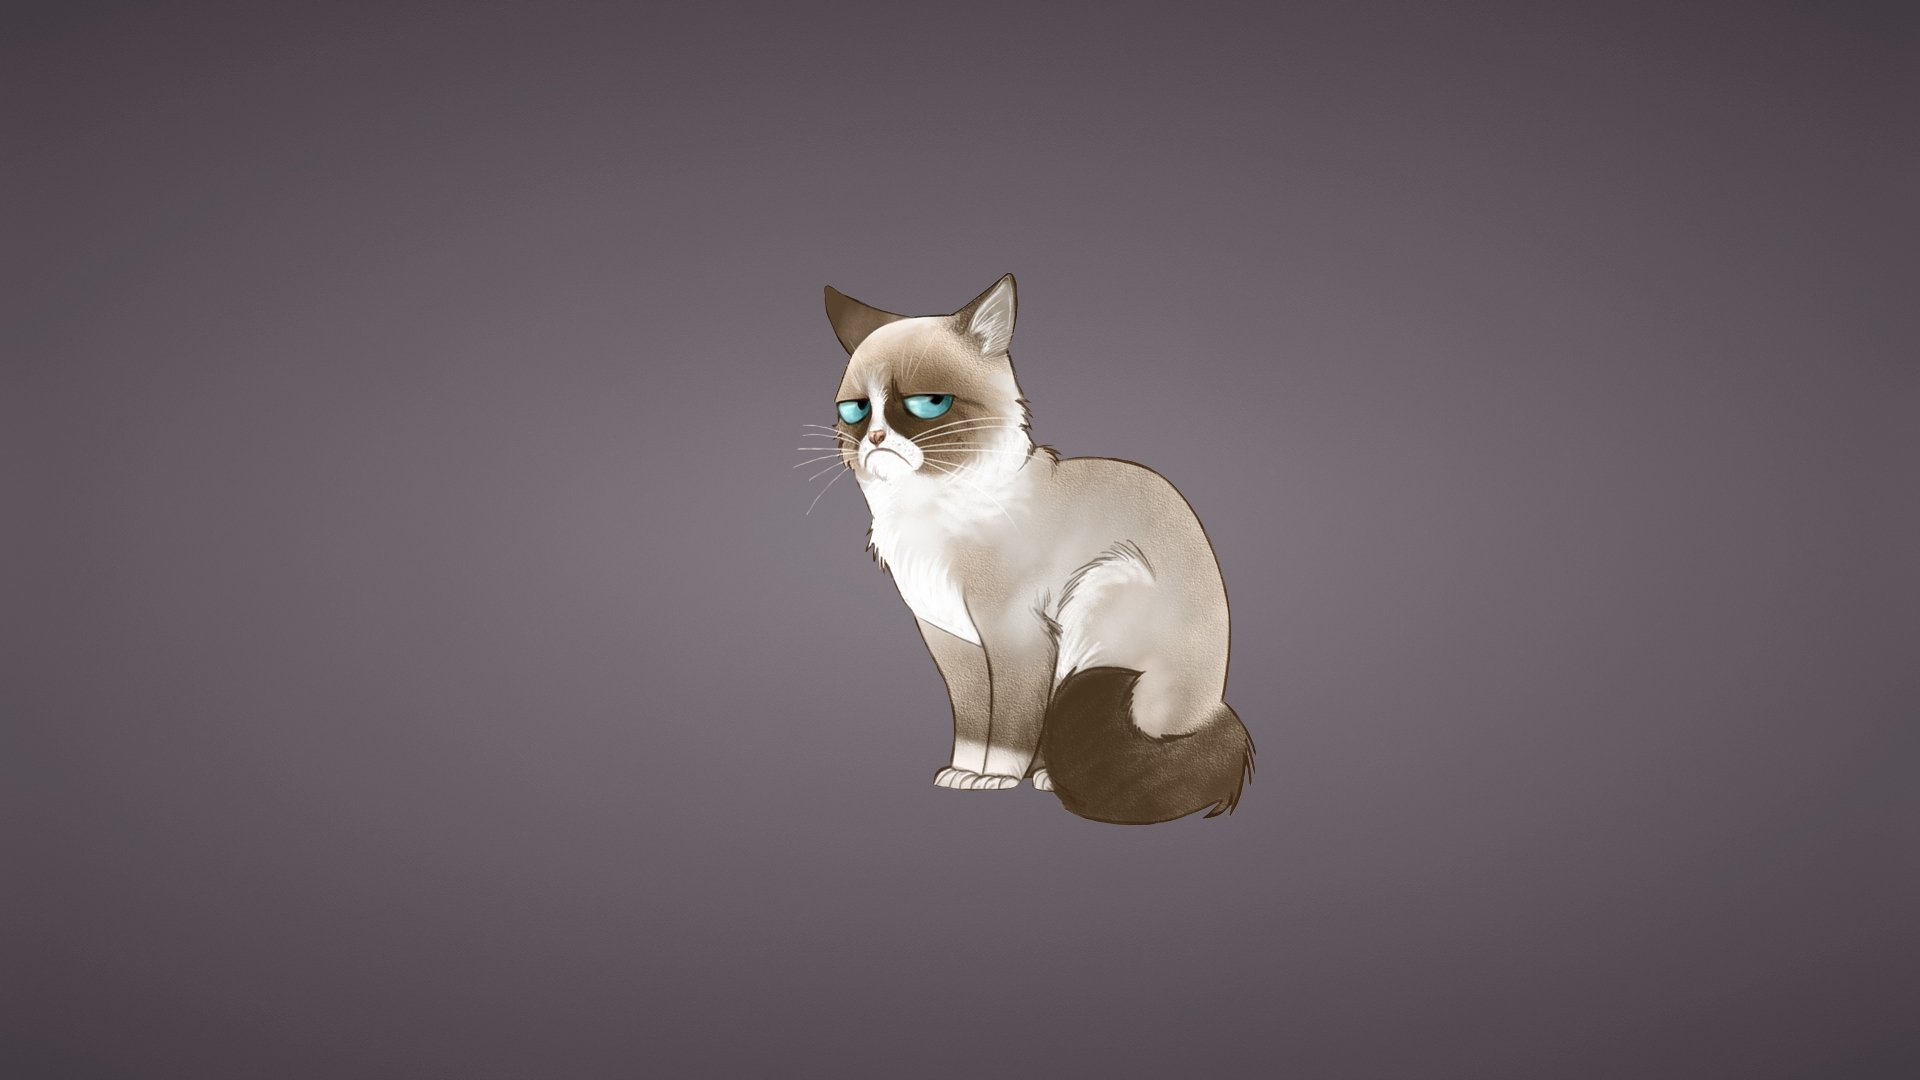 Grumpy cat galaxy wallpaper wallpapersafari - Cat wallpaper cartoon ...